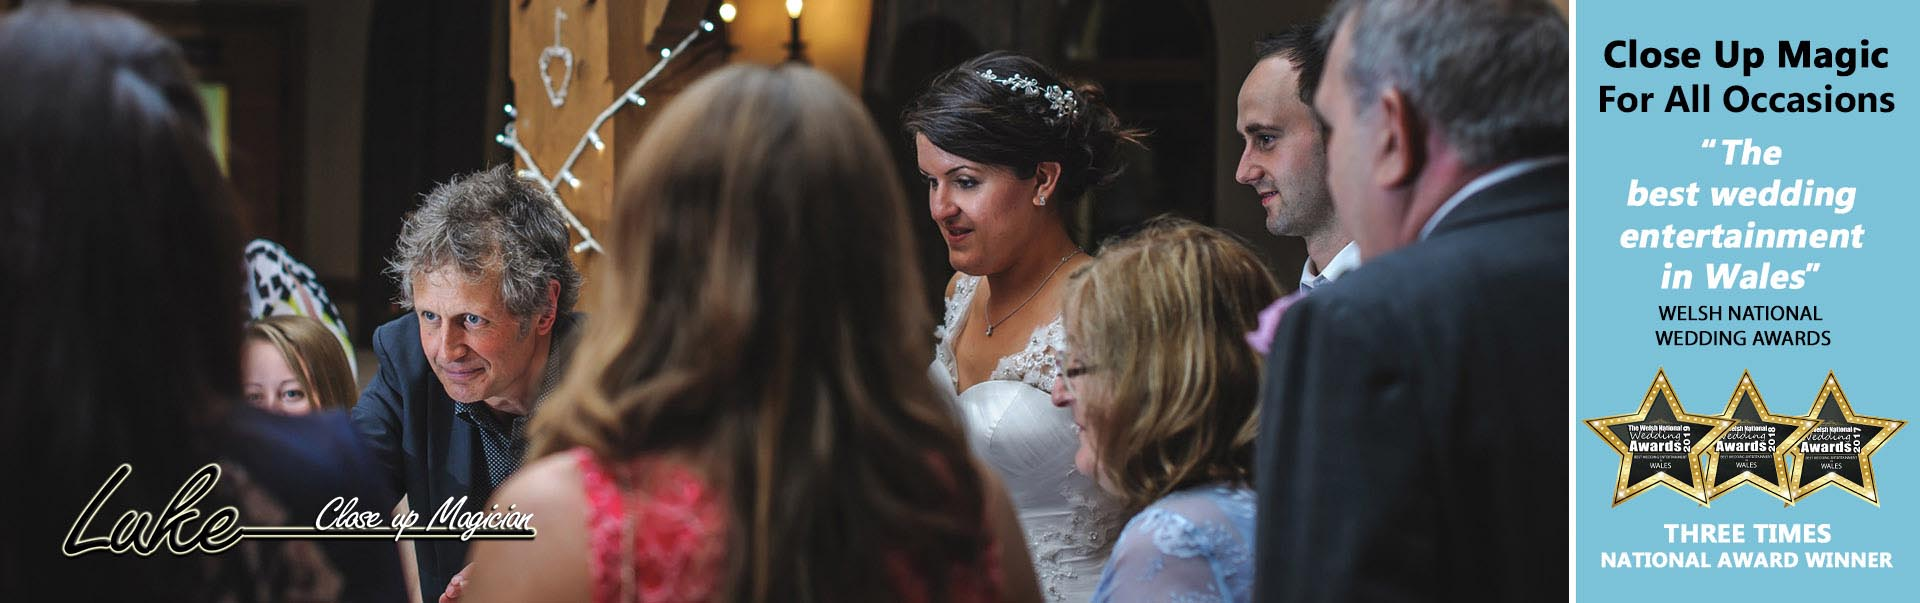 Magic for bride and her family